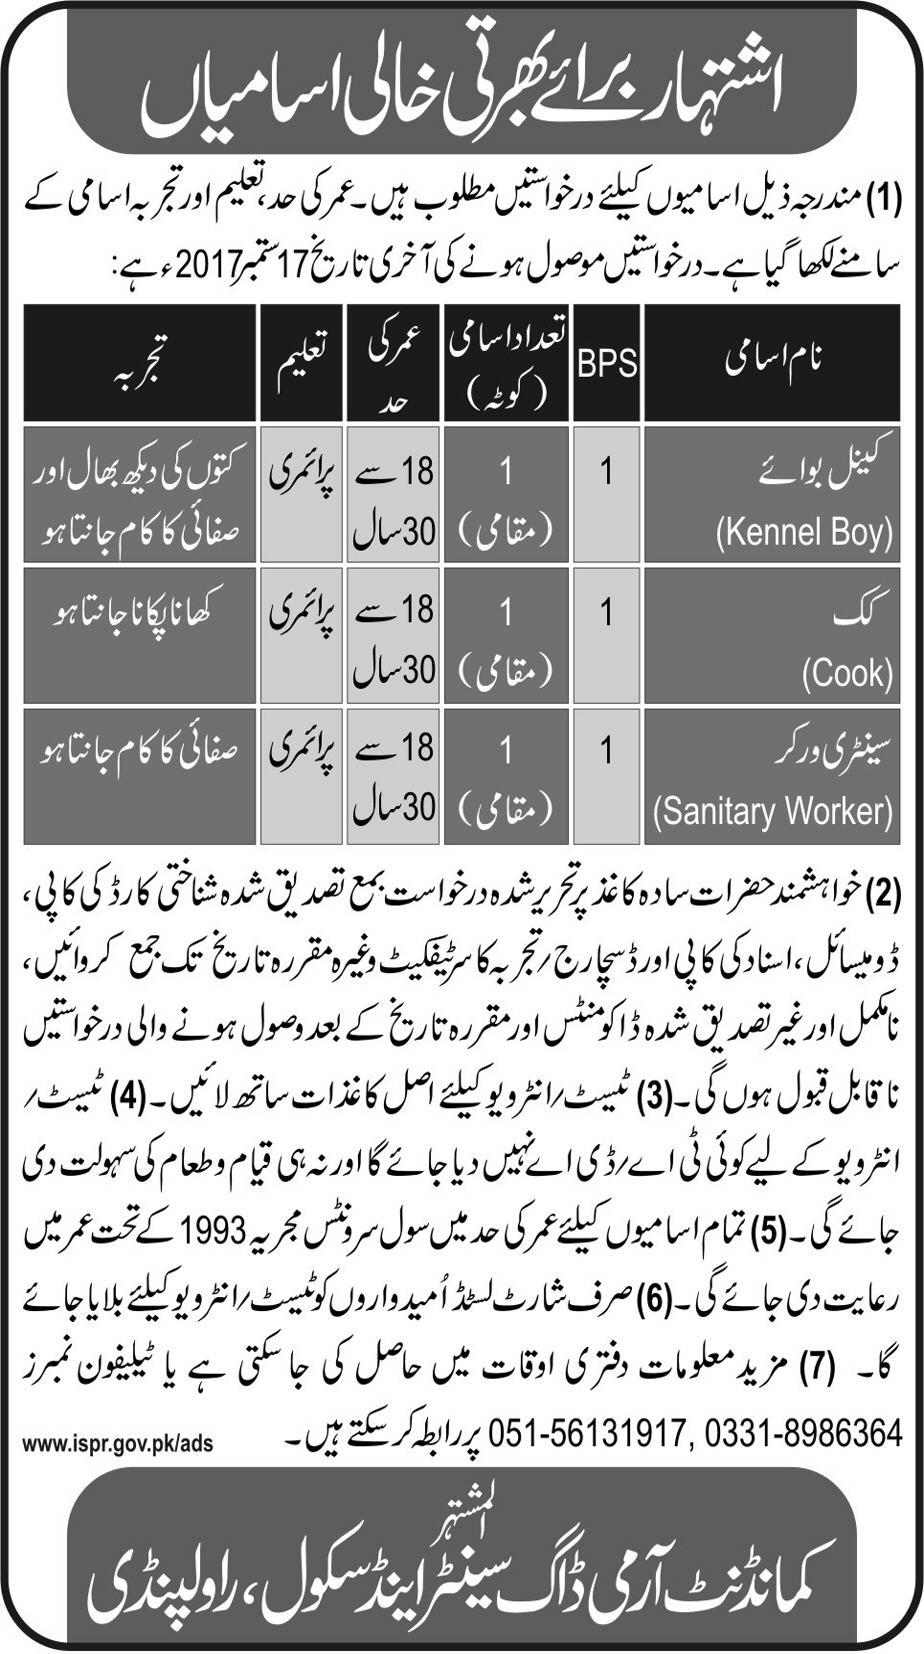 Kennel Boy, Cook & Sanitary Worker Jobs For School